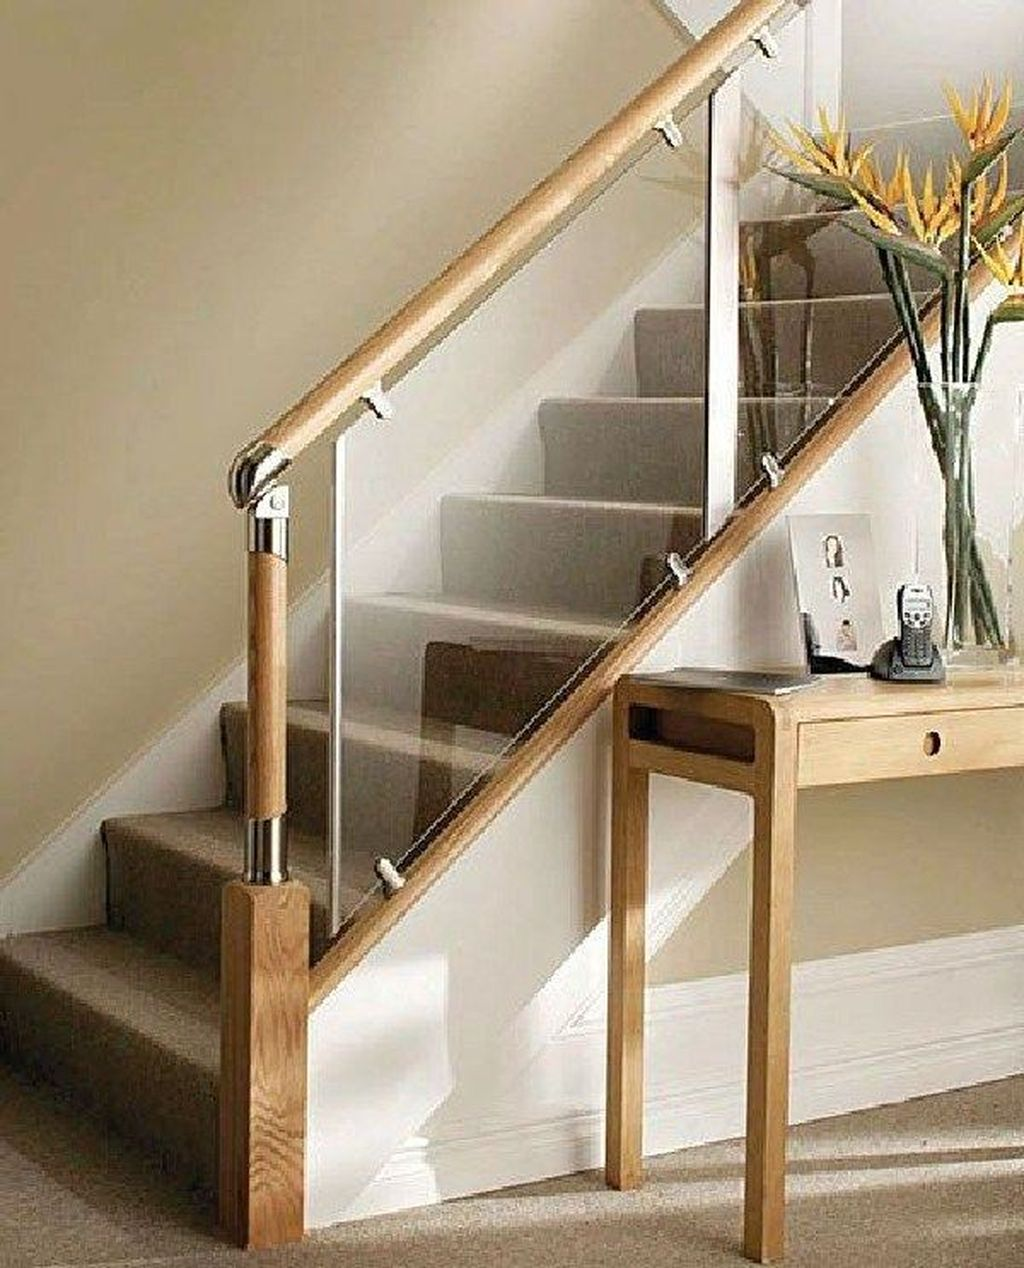 Awesome Modern Glass Railings Design Ideas For Stairs 31